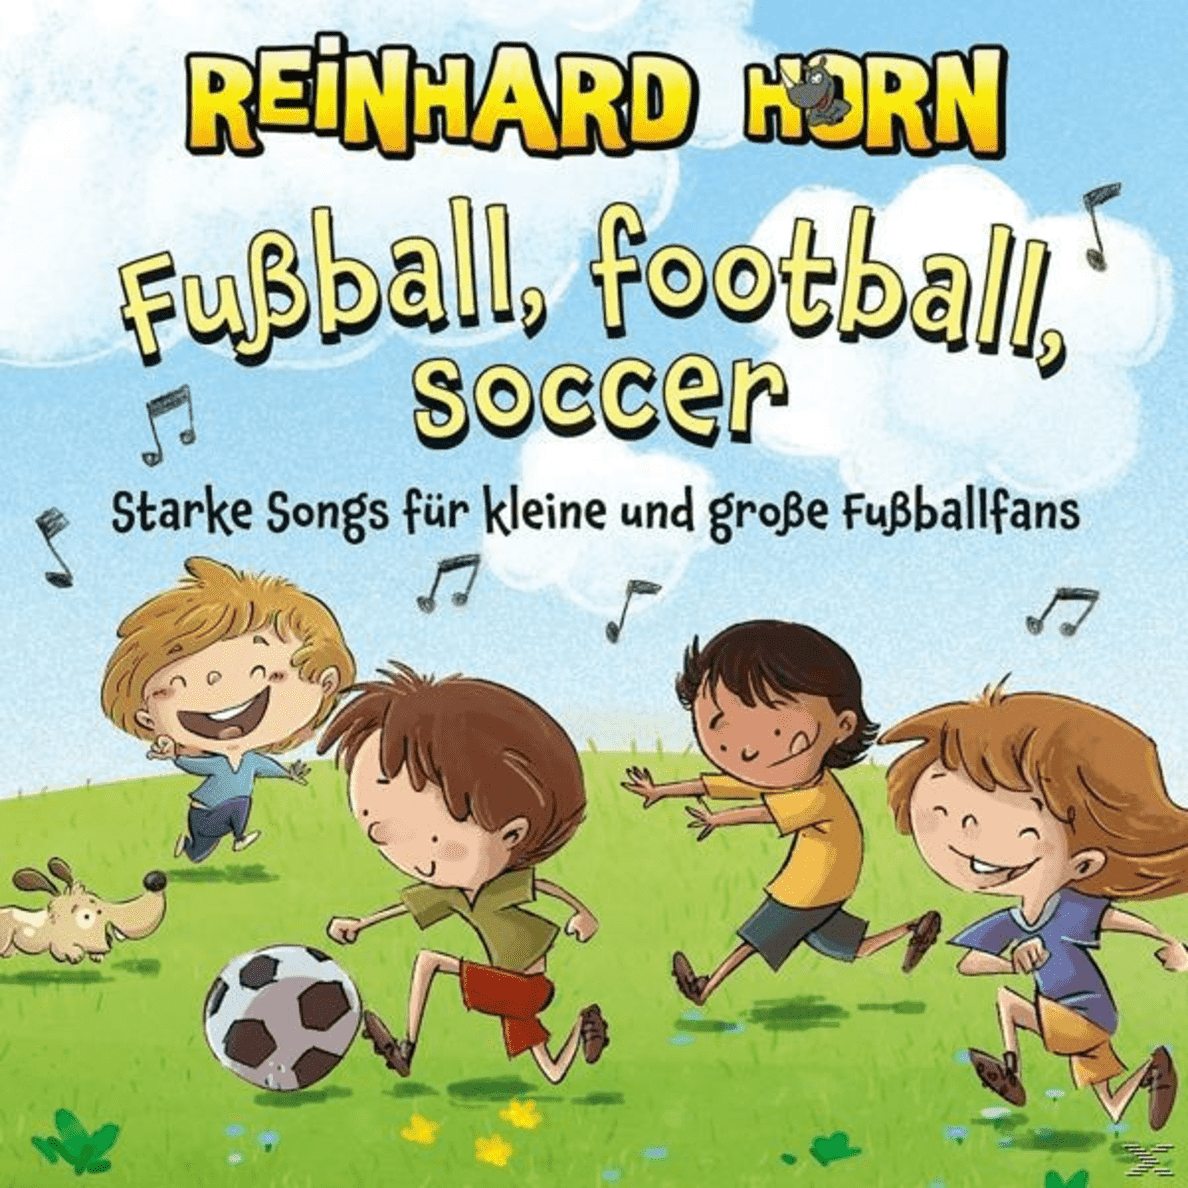 Reinhard Horn - FUSSBALL FOOTBALL SOCCER - (CD)